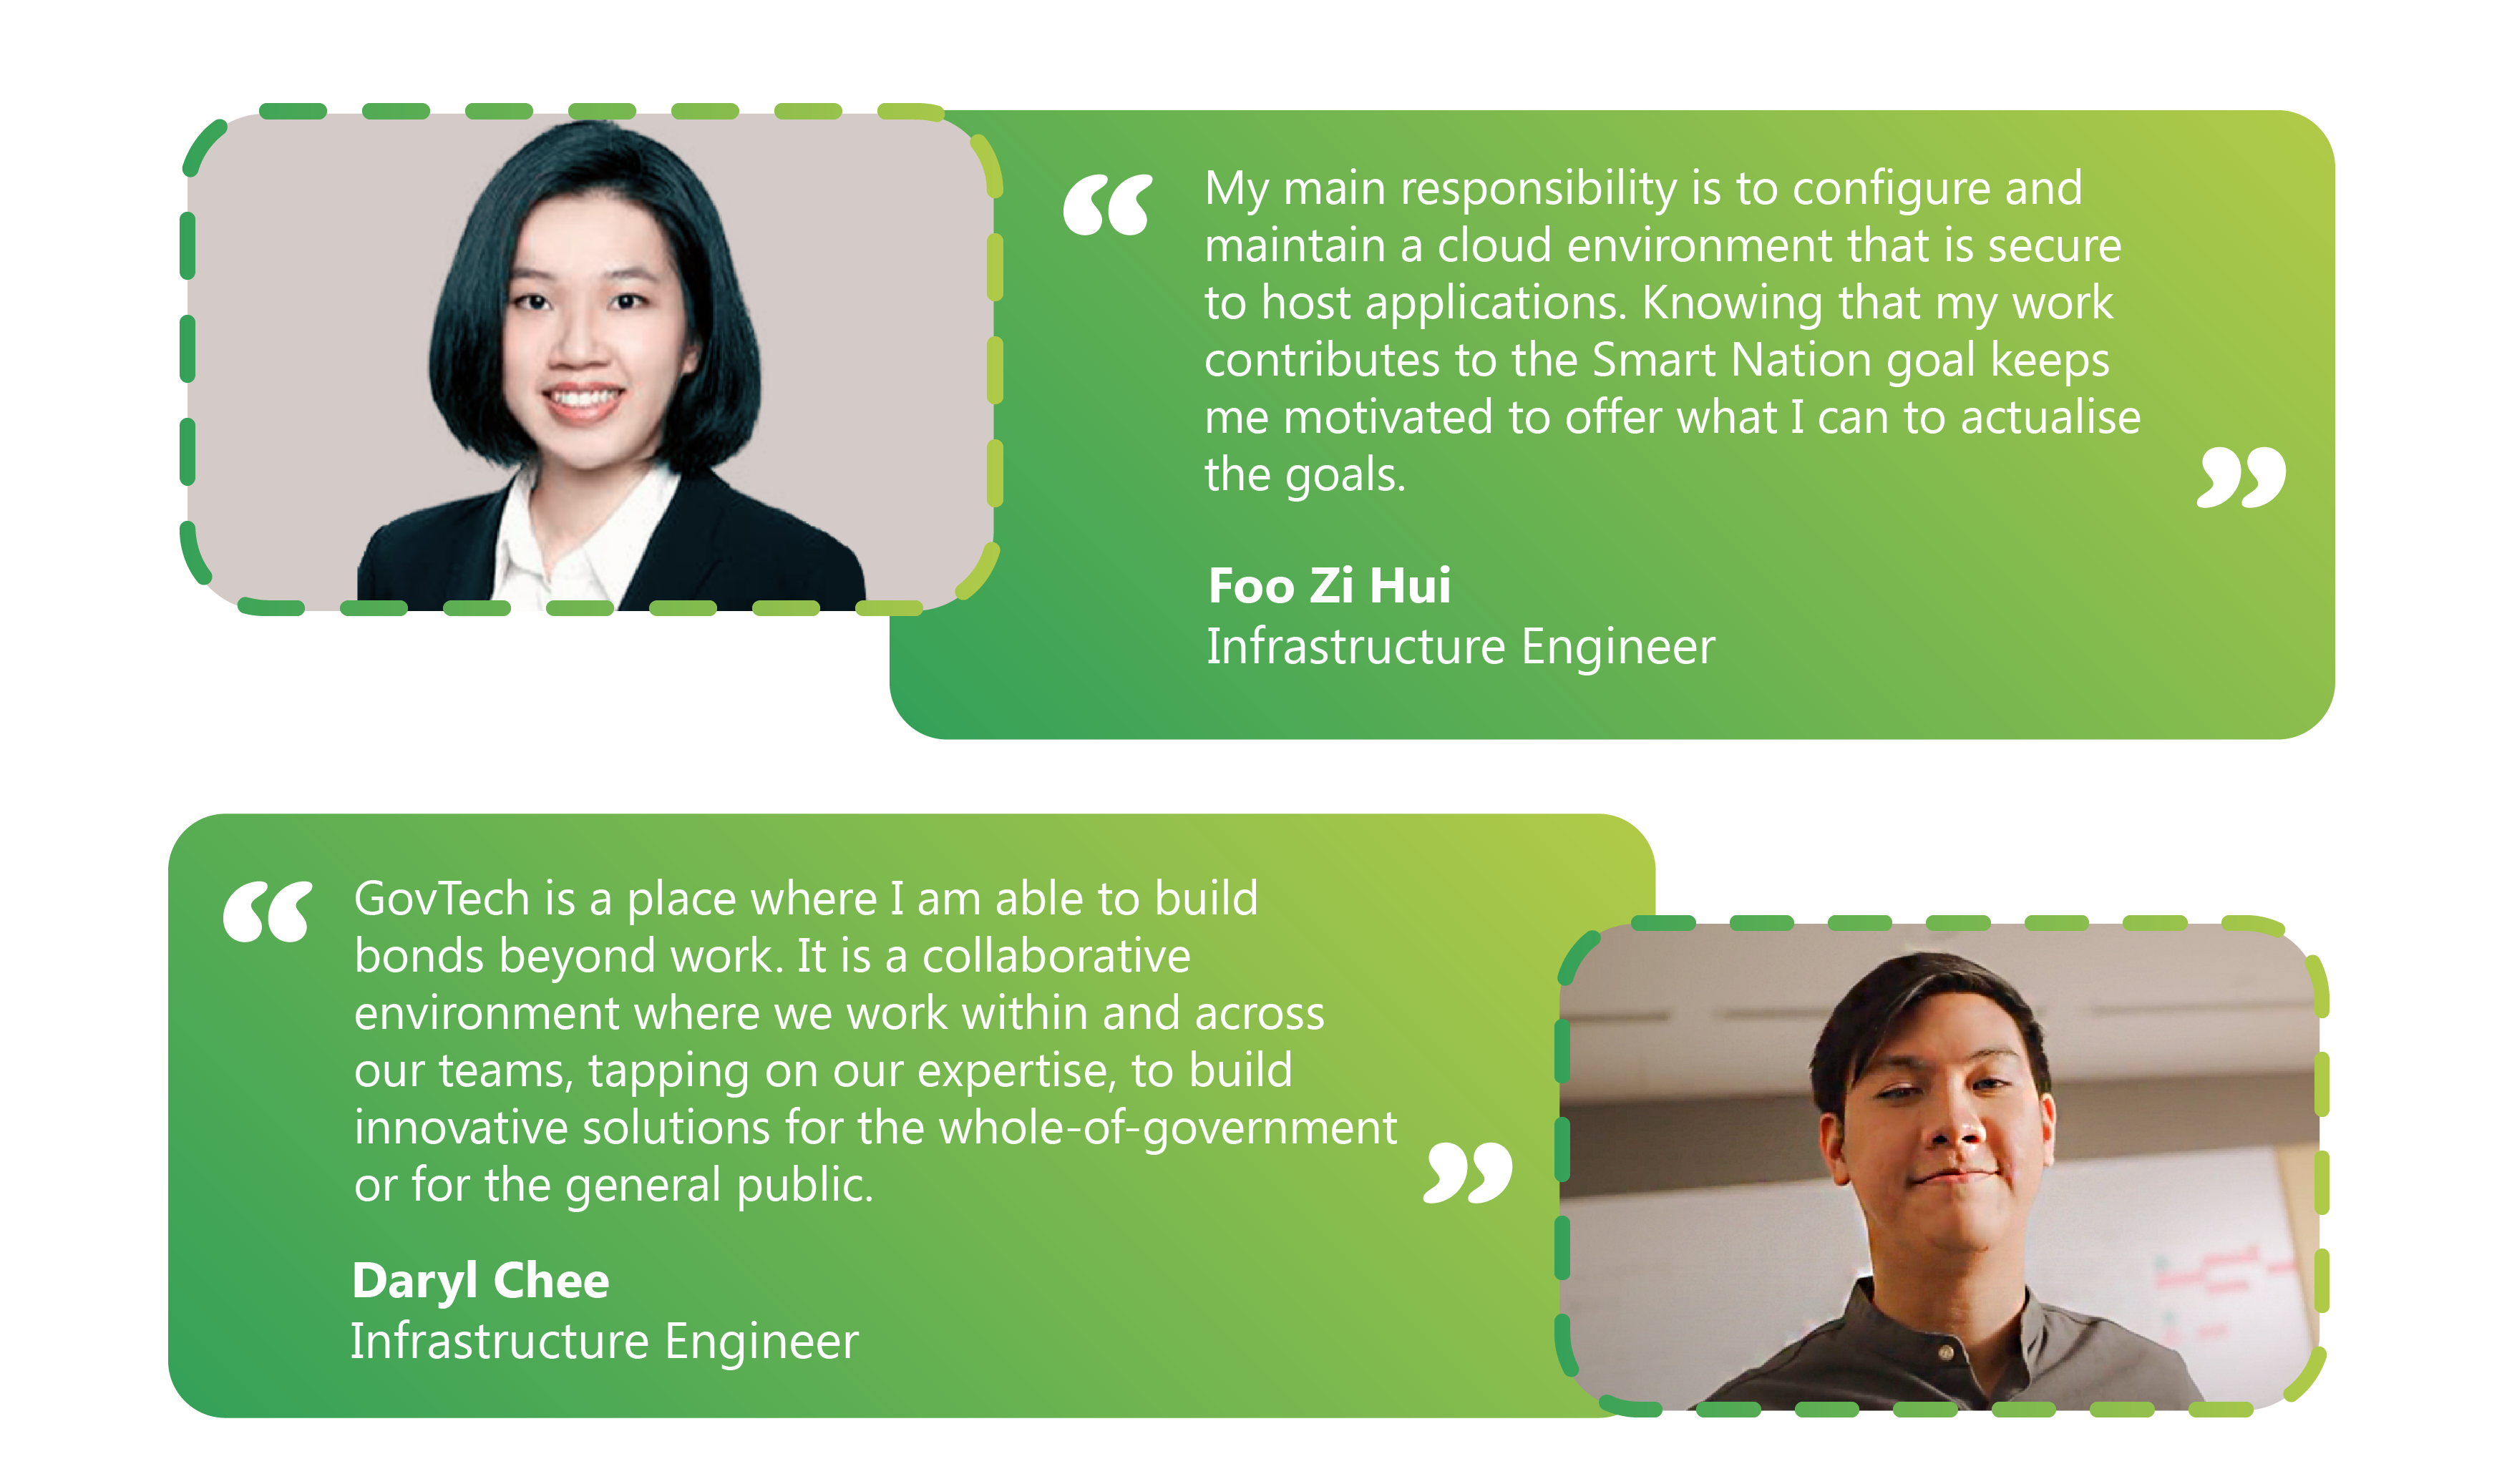 Government ICT Infrastructure Quotes